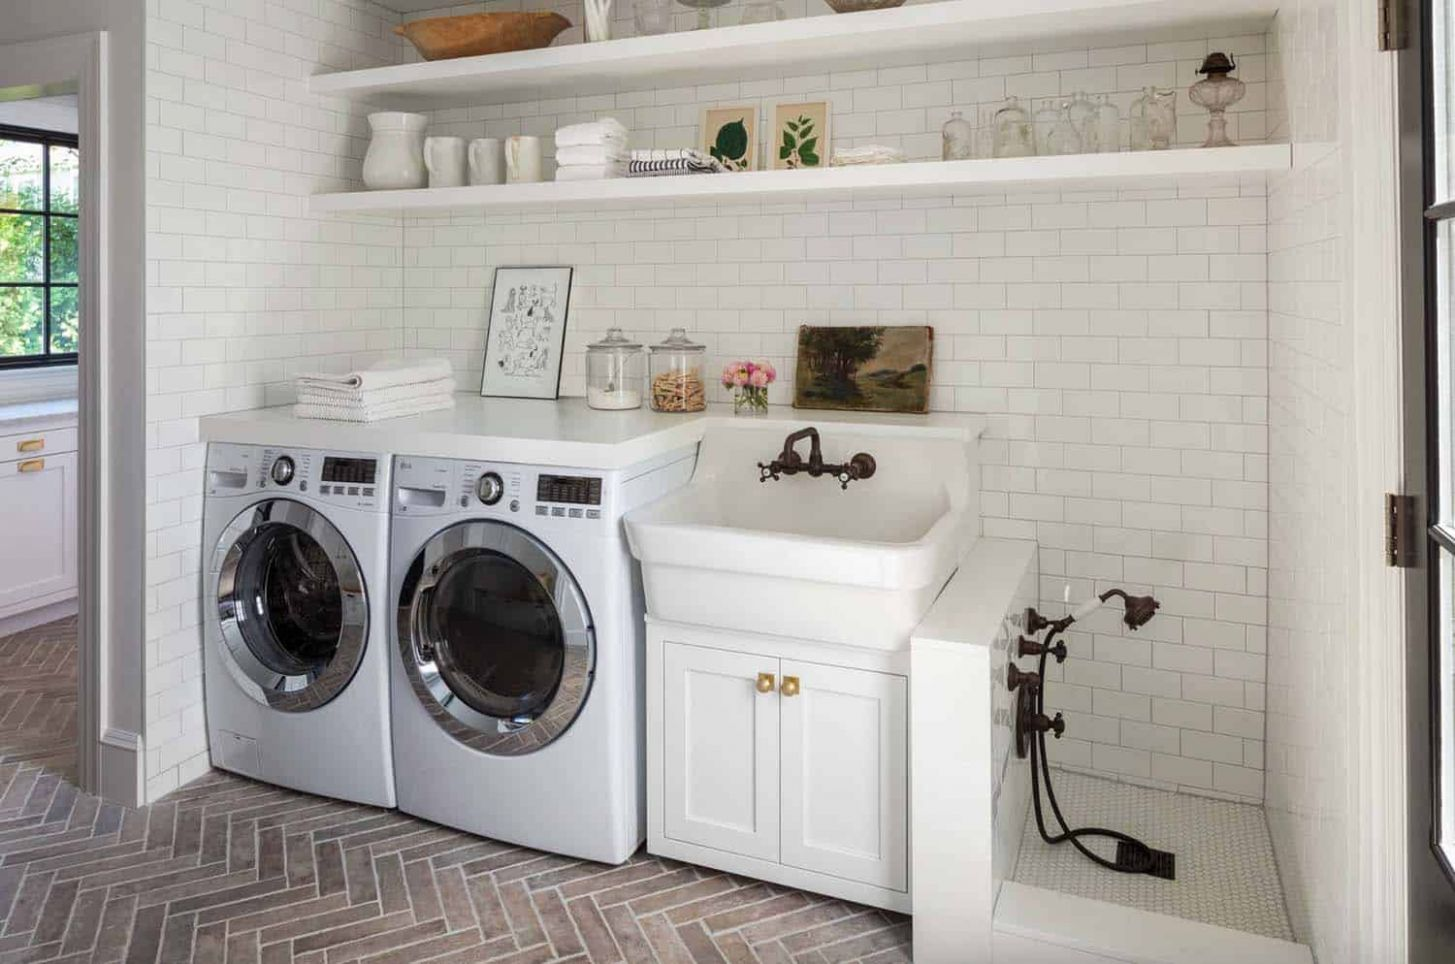 10 Functional And Stylish Laundry Room Design Ideas To Inspire